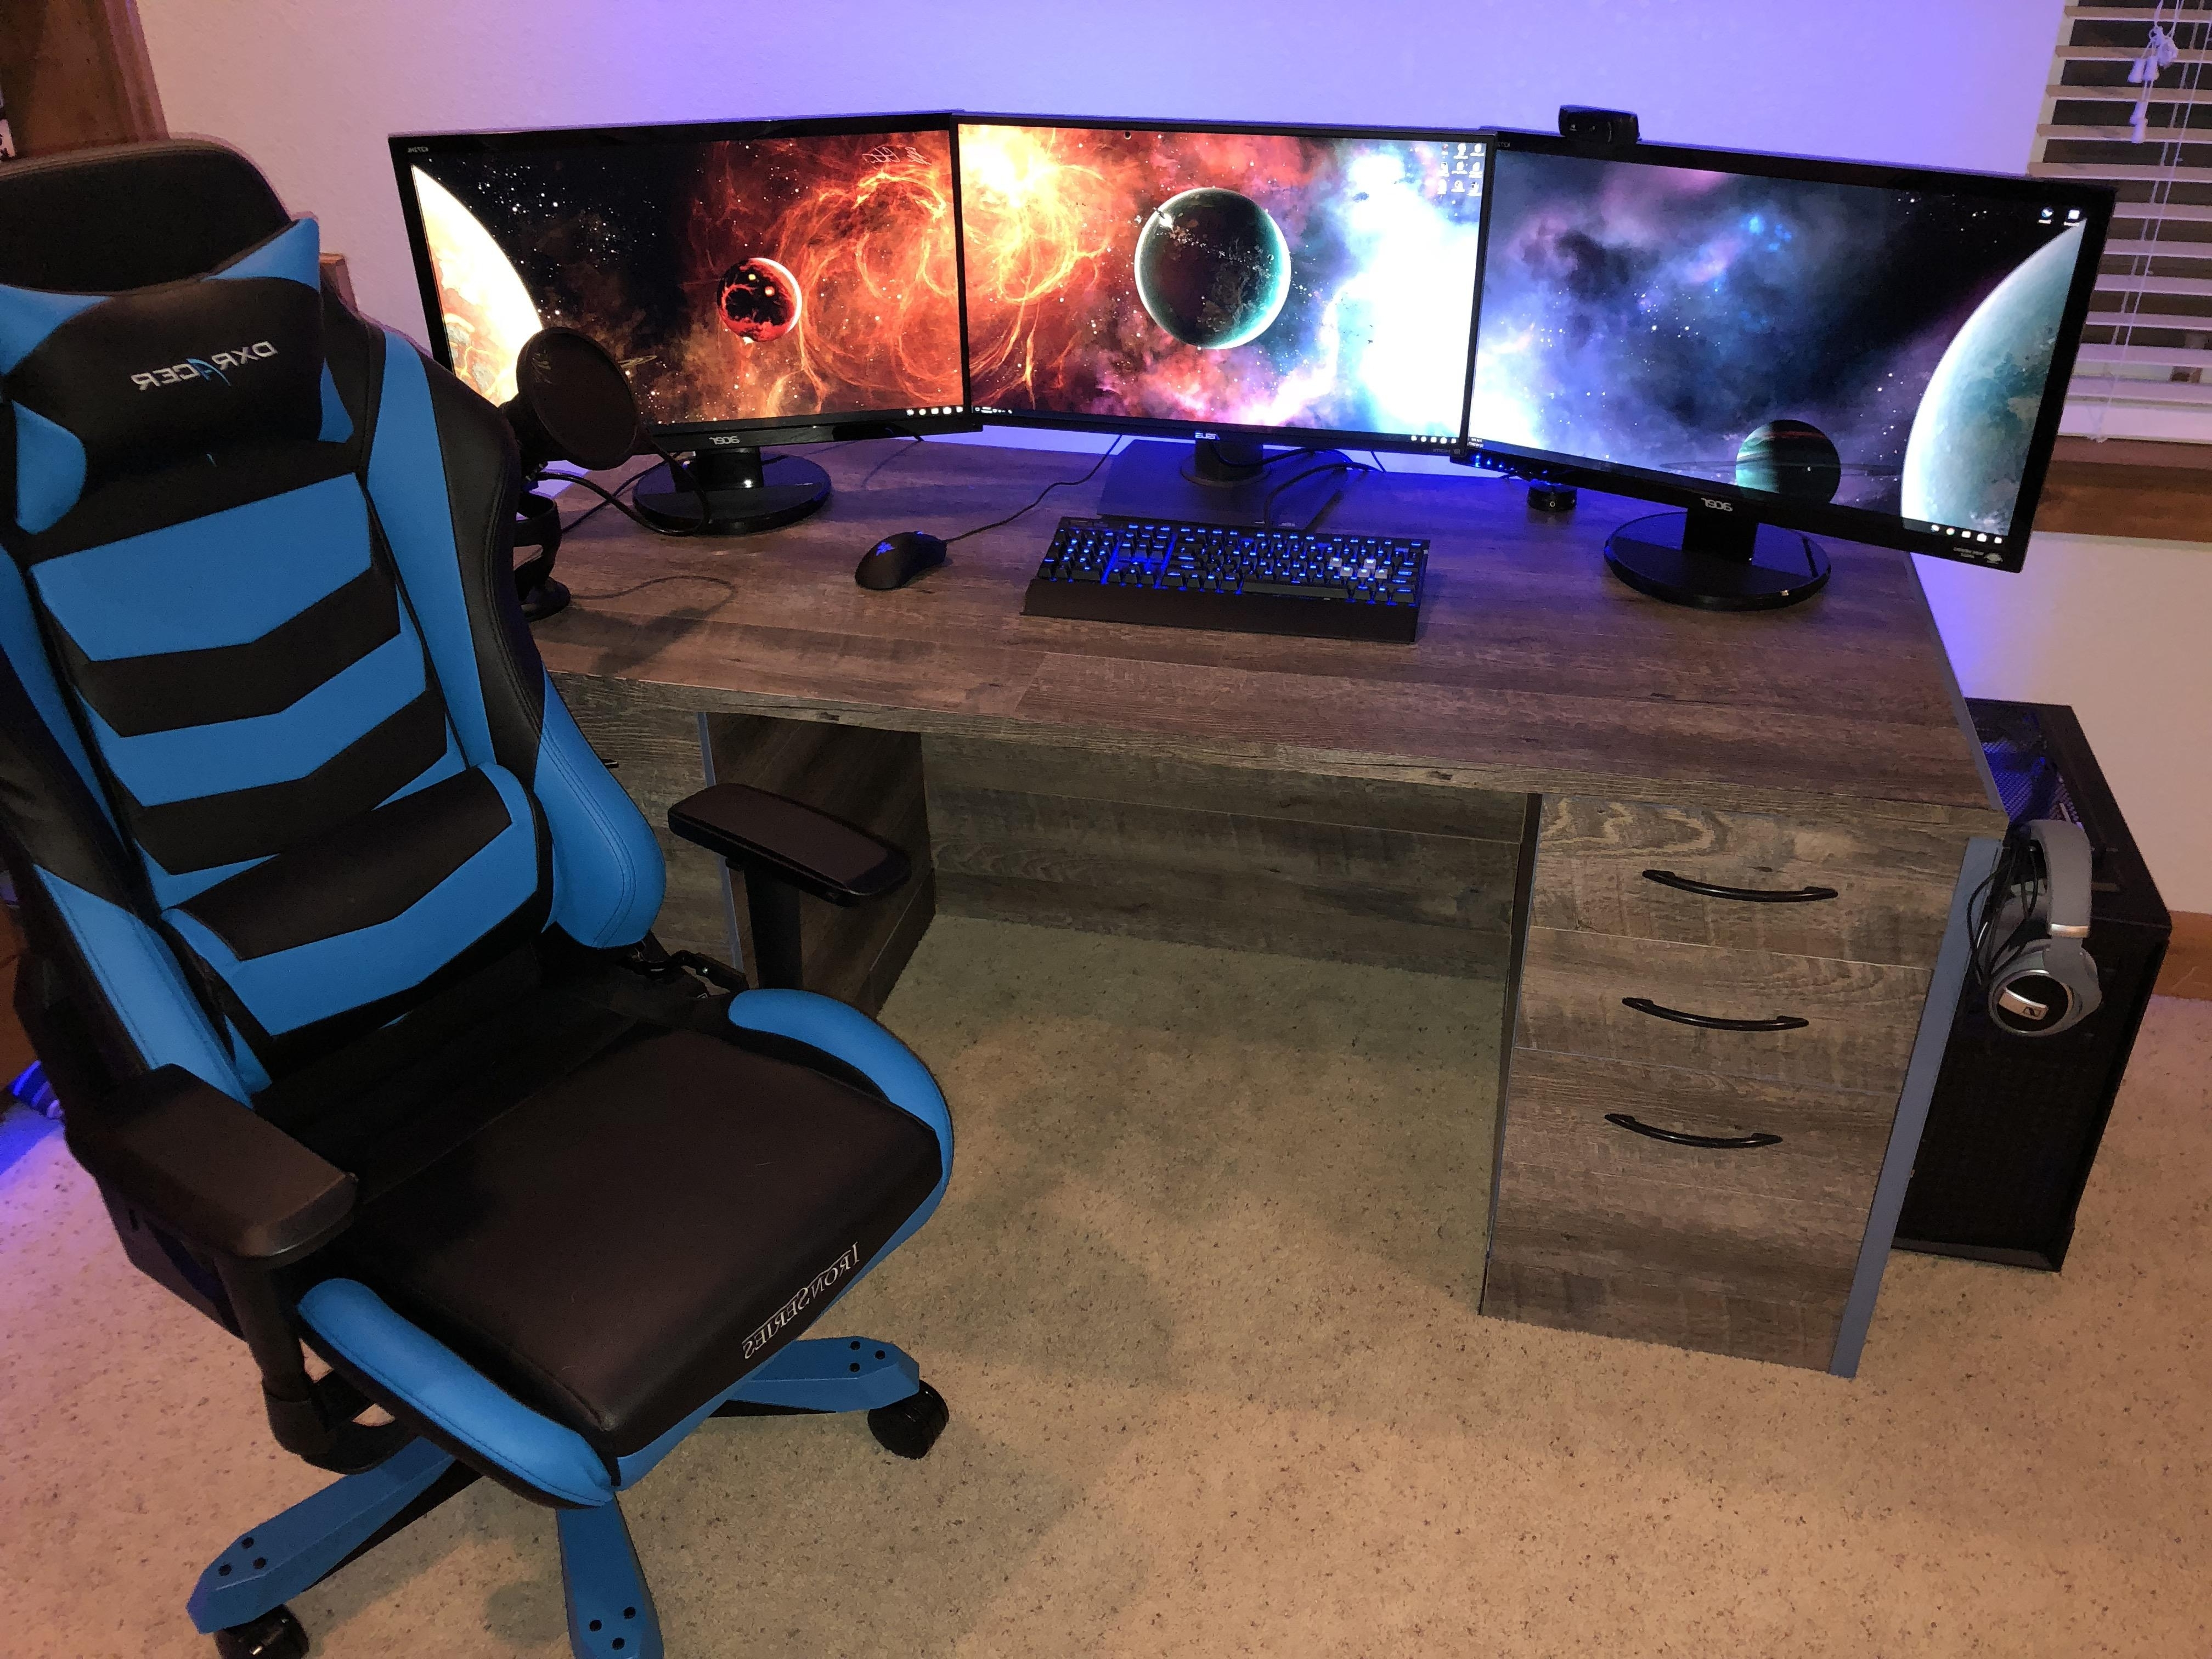 New Personalized Desk To Go With My 3 Monitor Blue Accent Setup Throughout Favorite Computer Desks